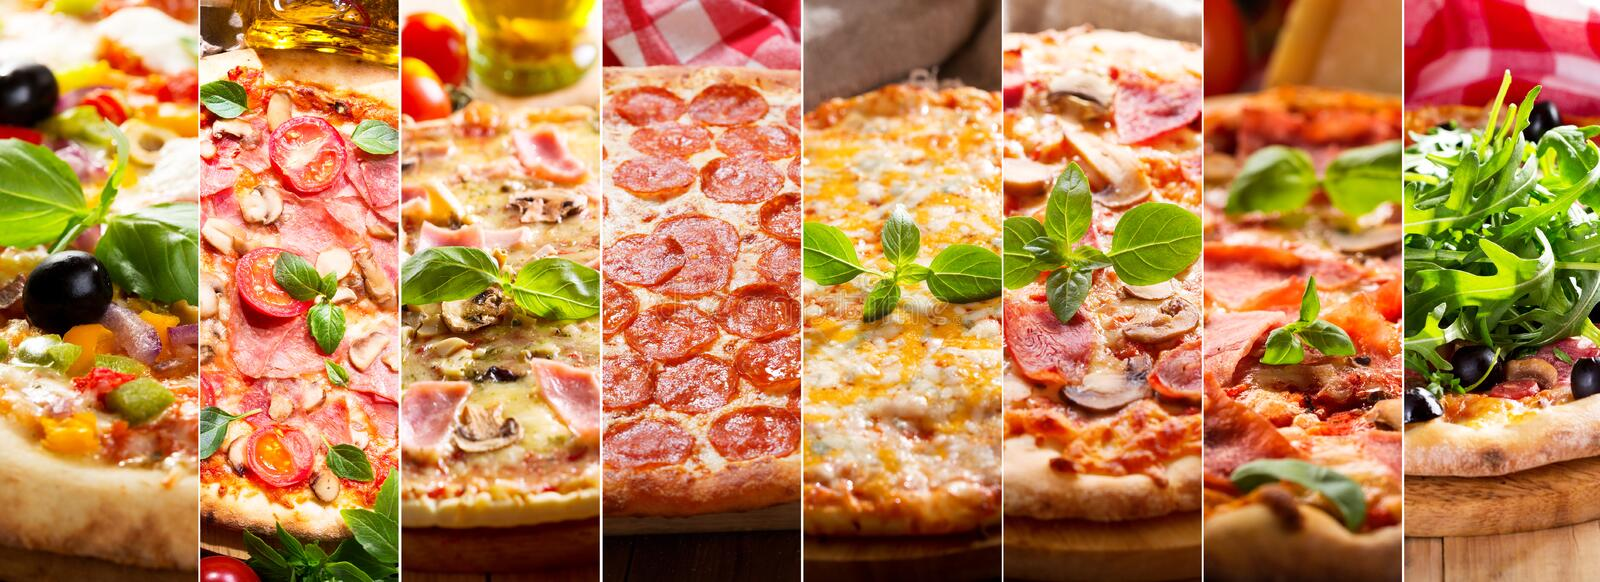 Collage of various types of pizza stock photos